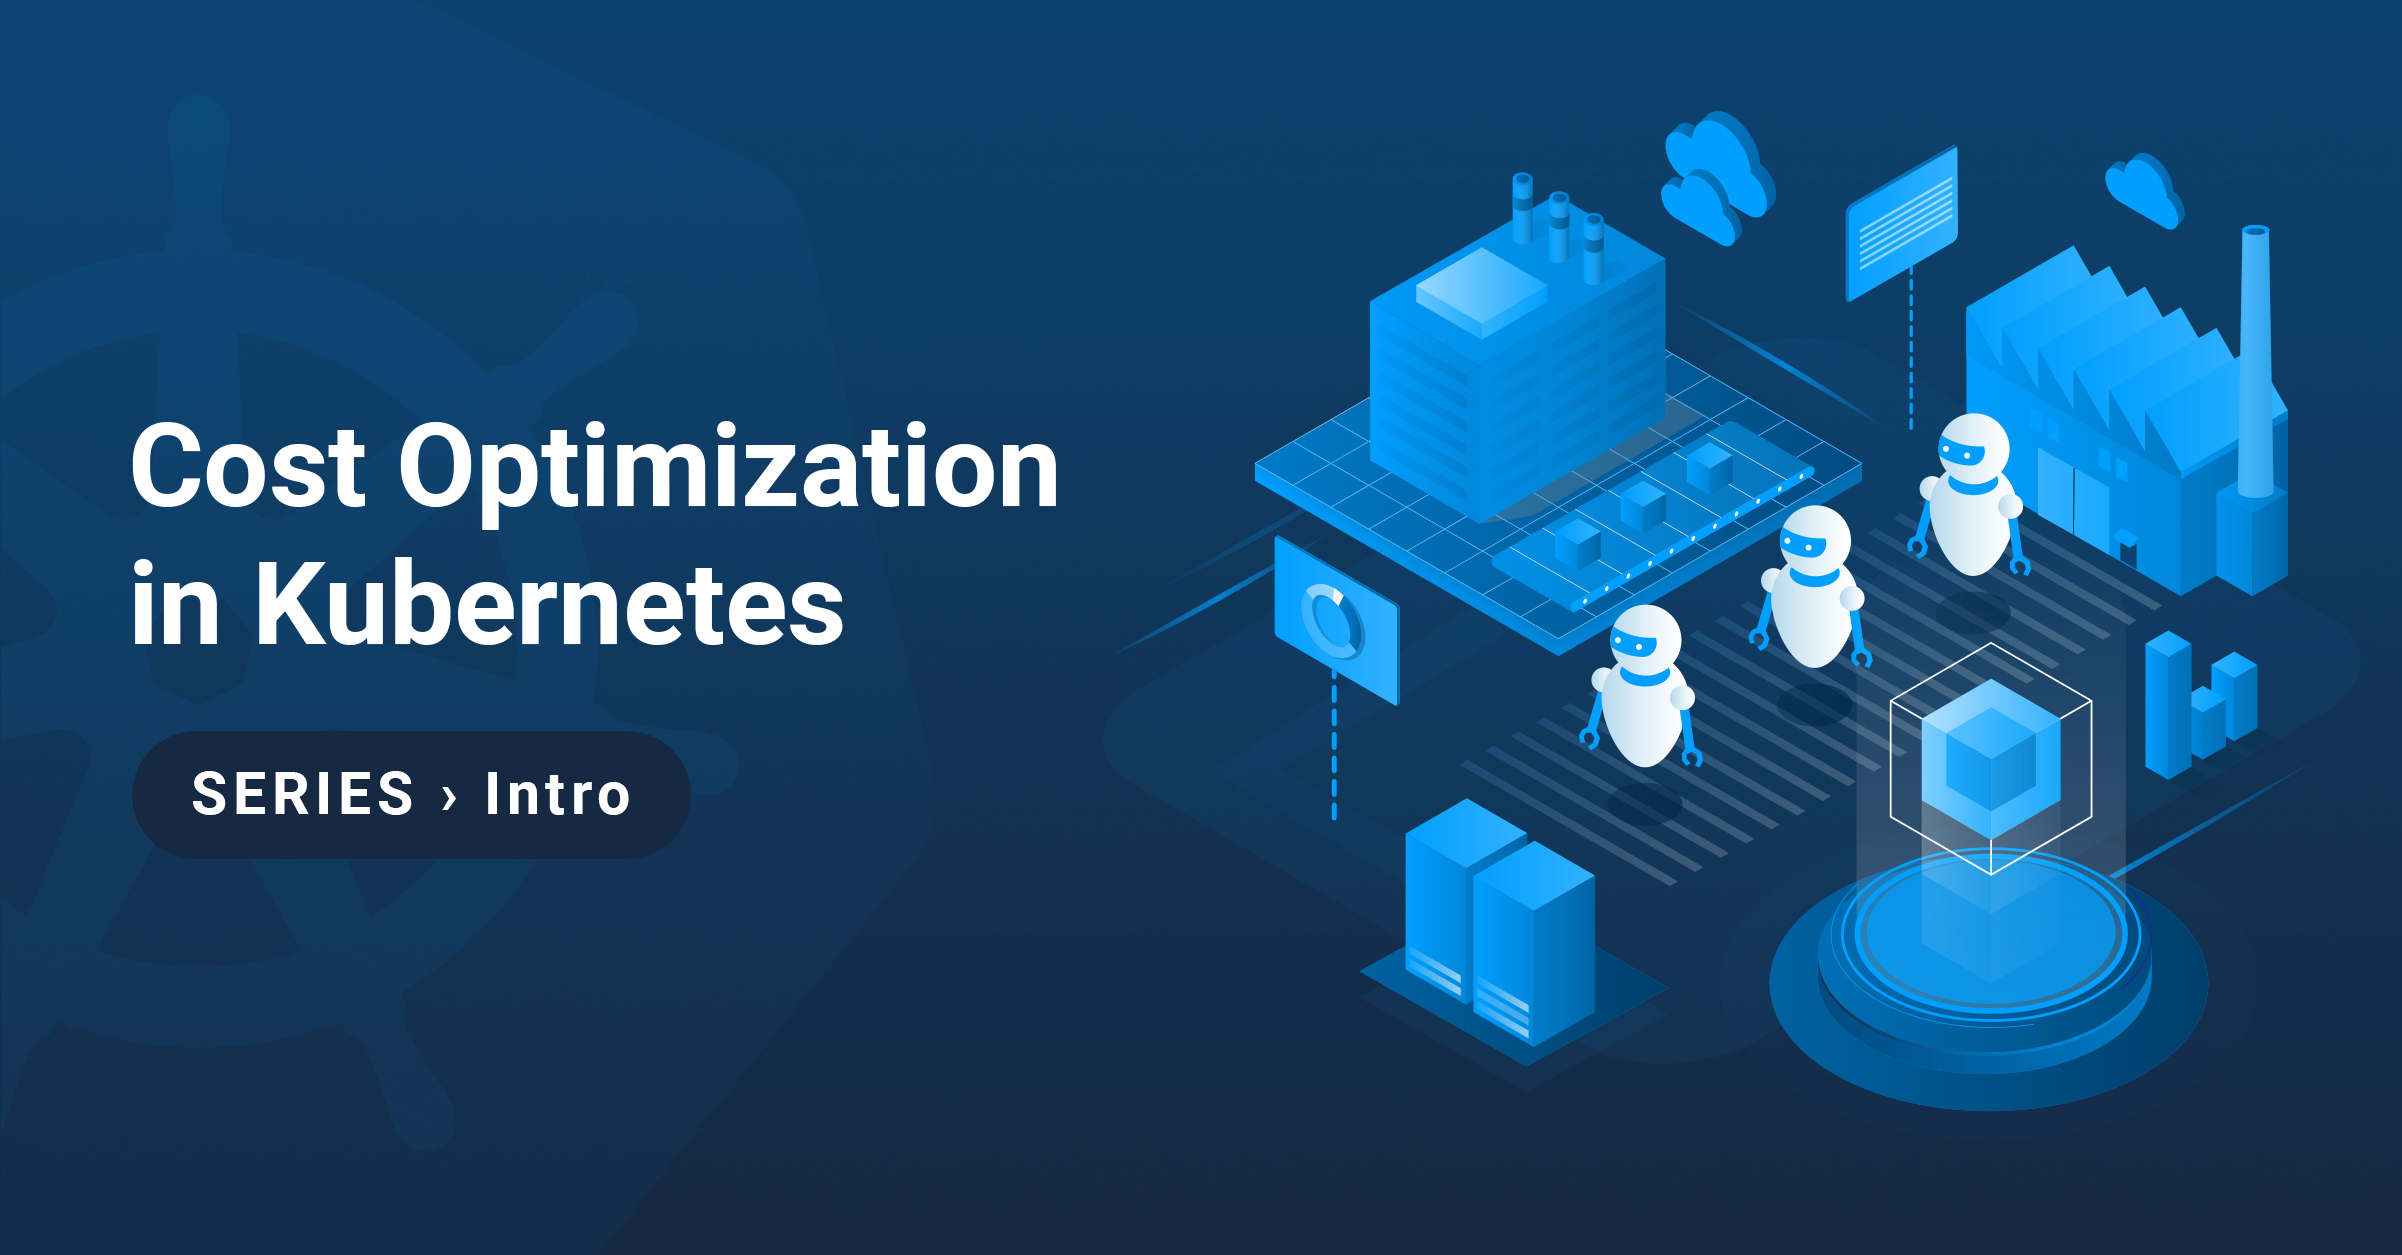 Introduction to cost optimization in Kubernetes